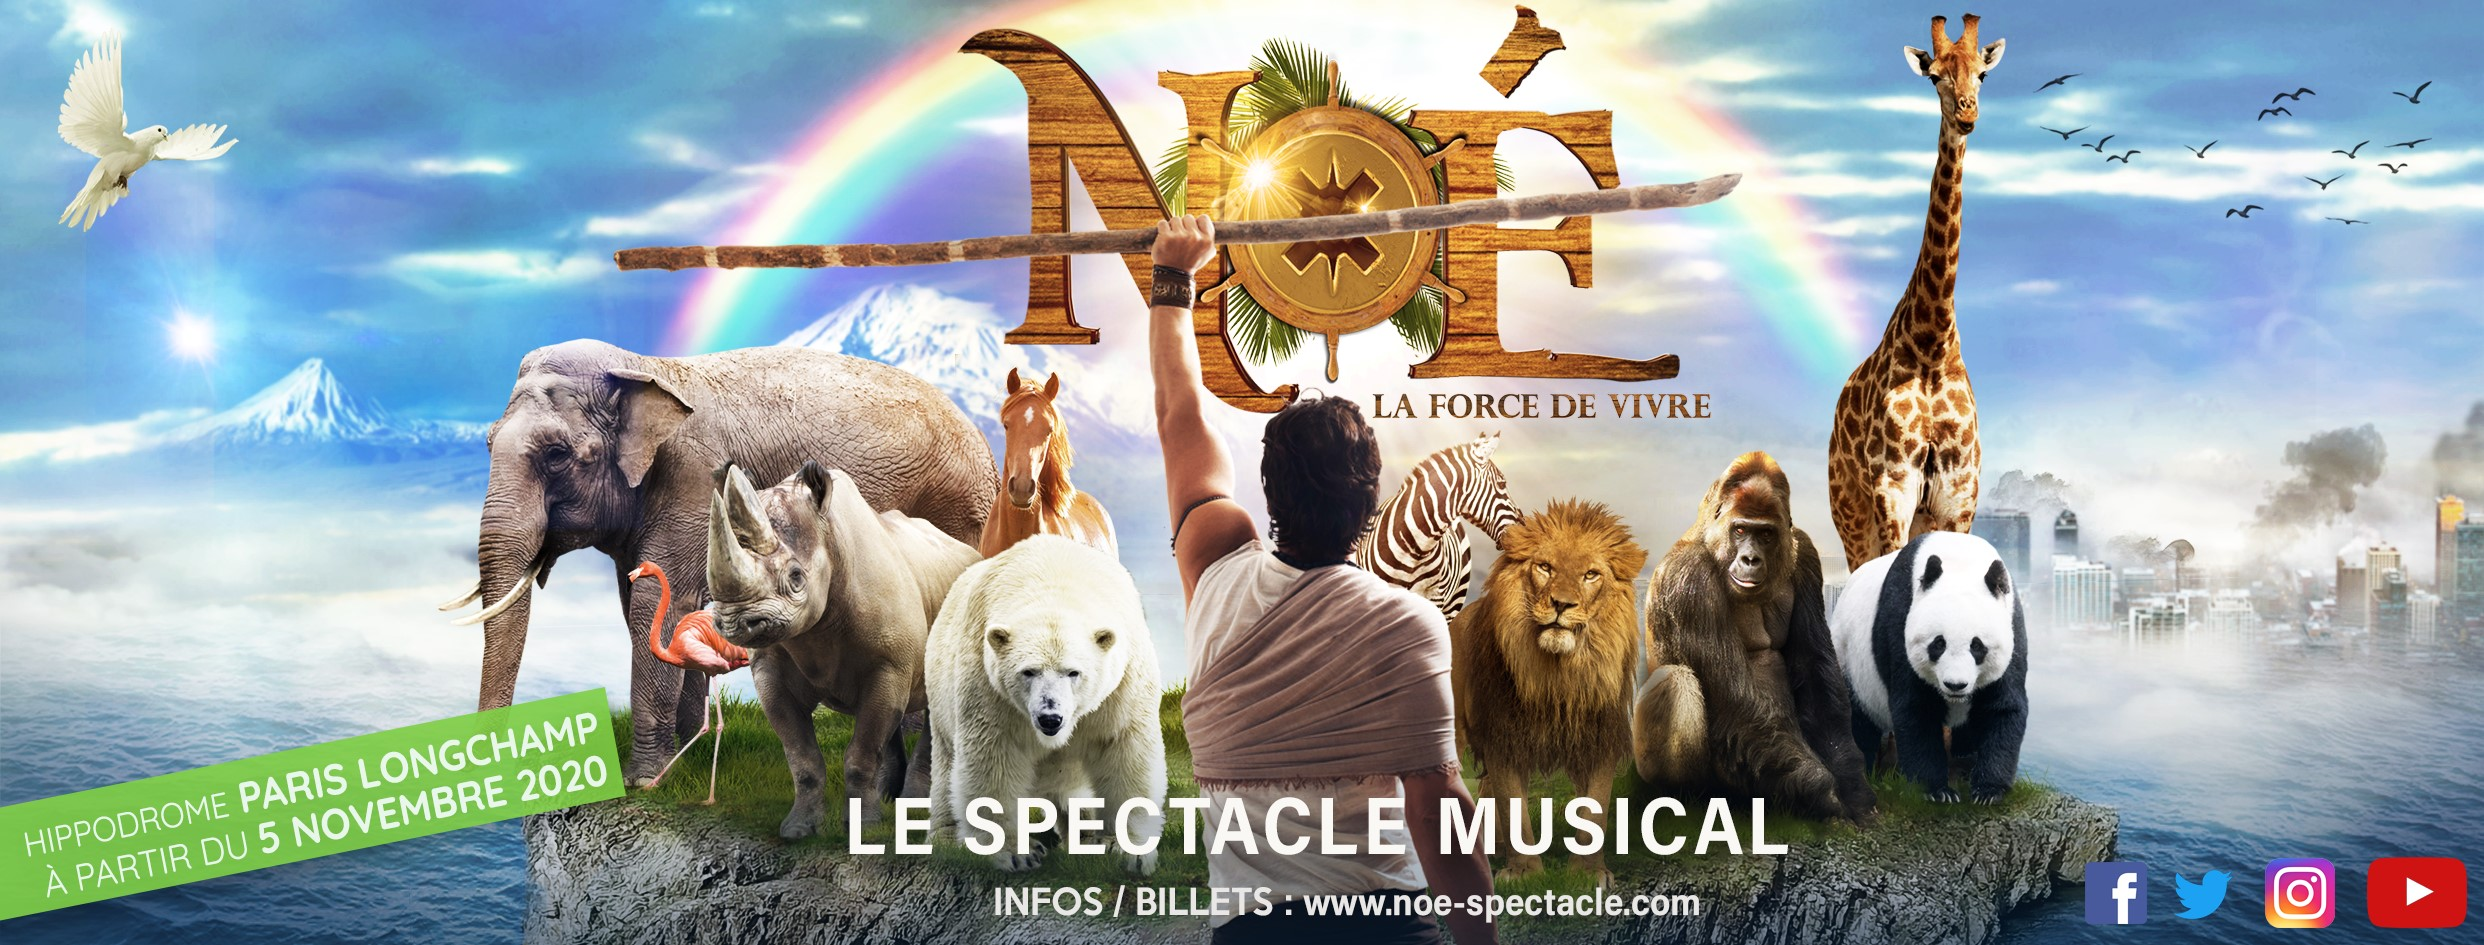 Noé la force de vivre - Noé le spectacle musical - animaux